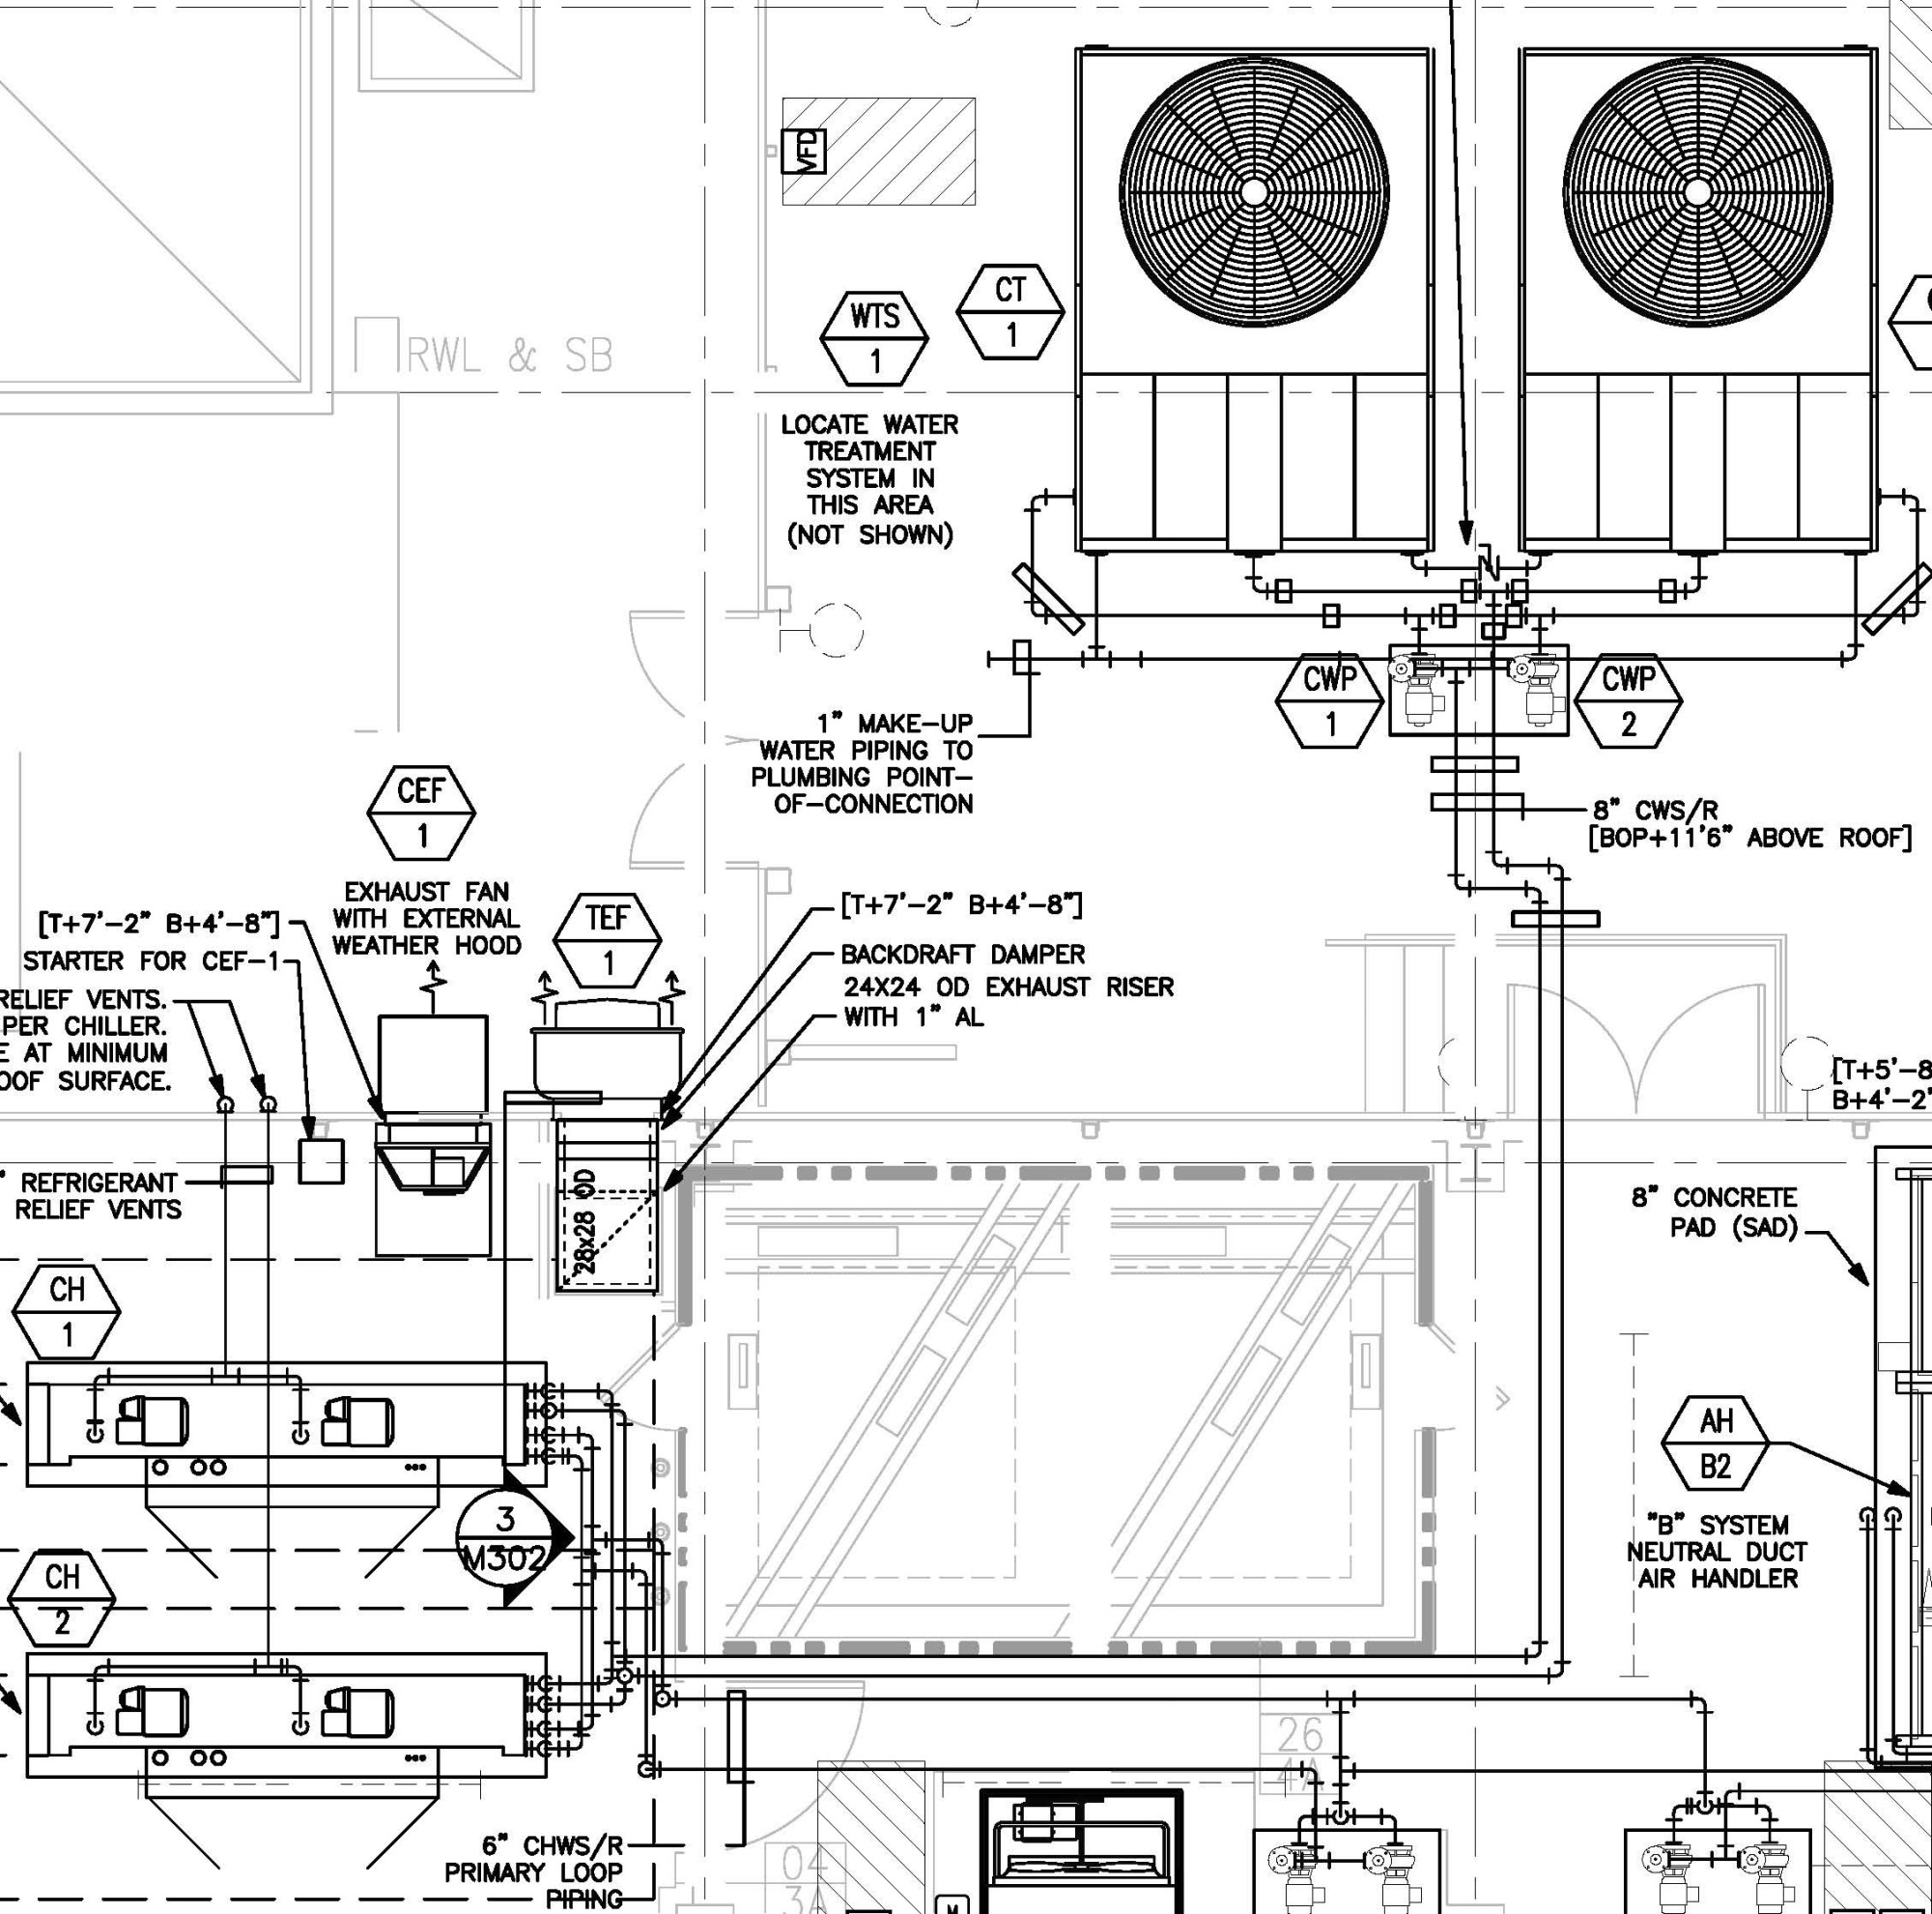 hight resolution of walk in freezer wiring diagram norlake walk in cooler wiring diagram download related post 20